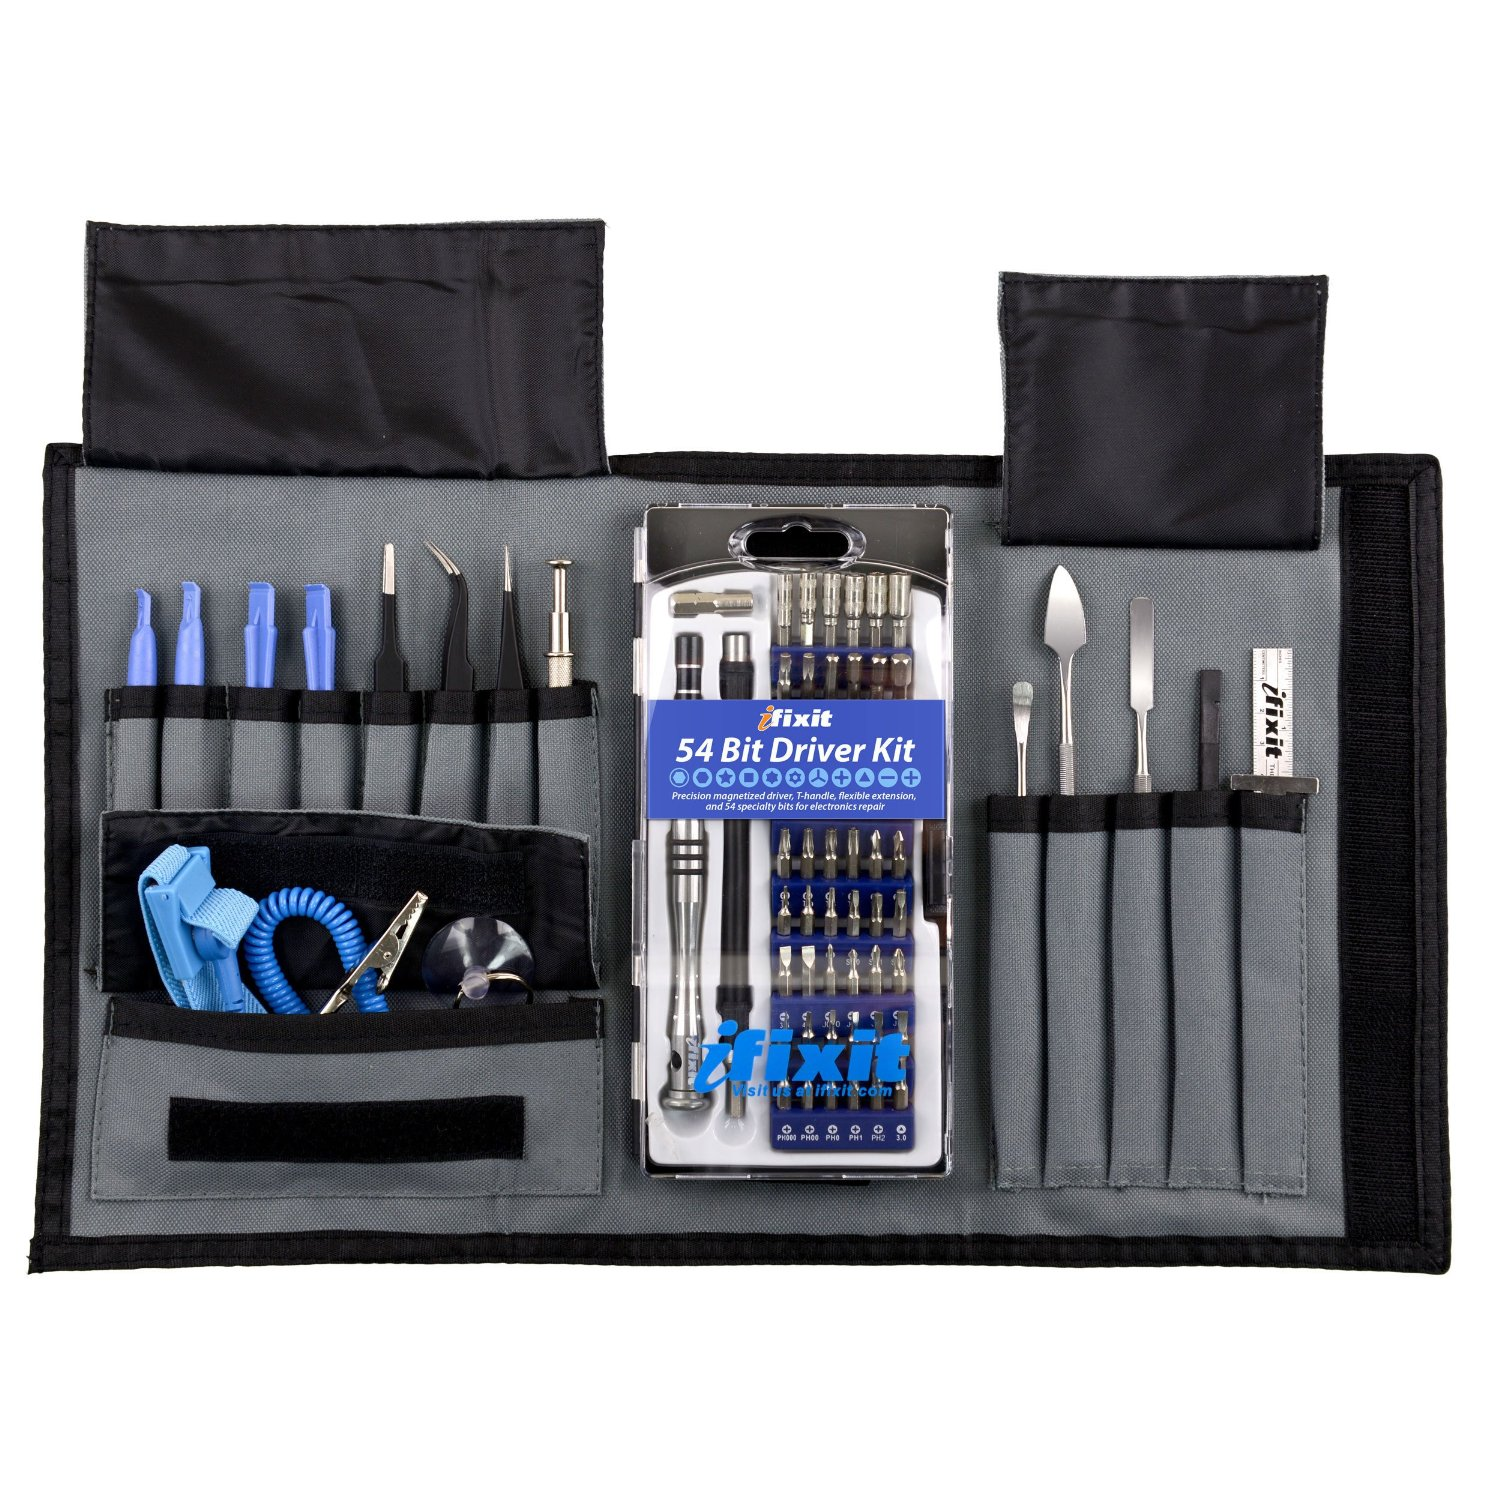 ifixit pro tech toolkit for upgrading computers phones laptops. Black Bedroom Furniture Sets. Home Design Ideas